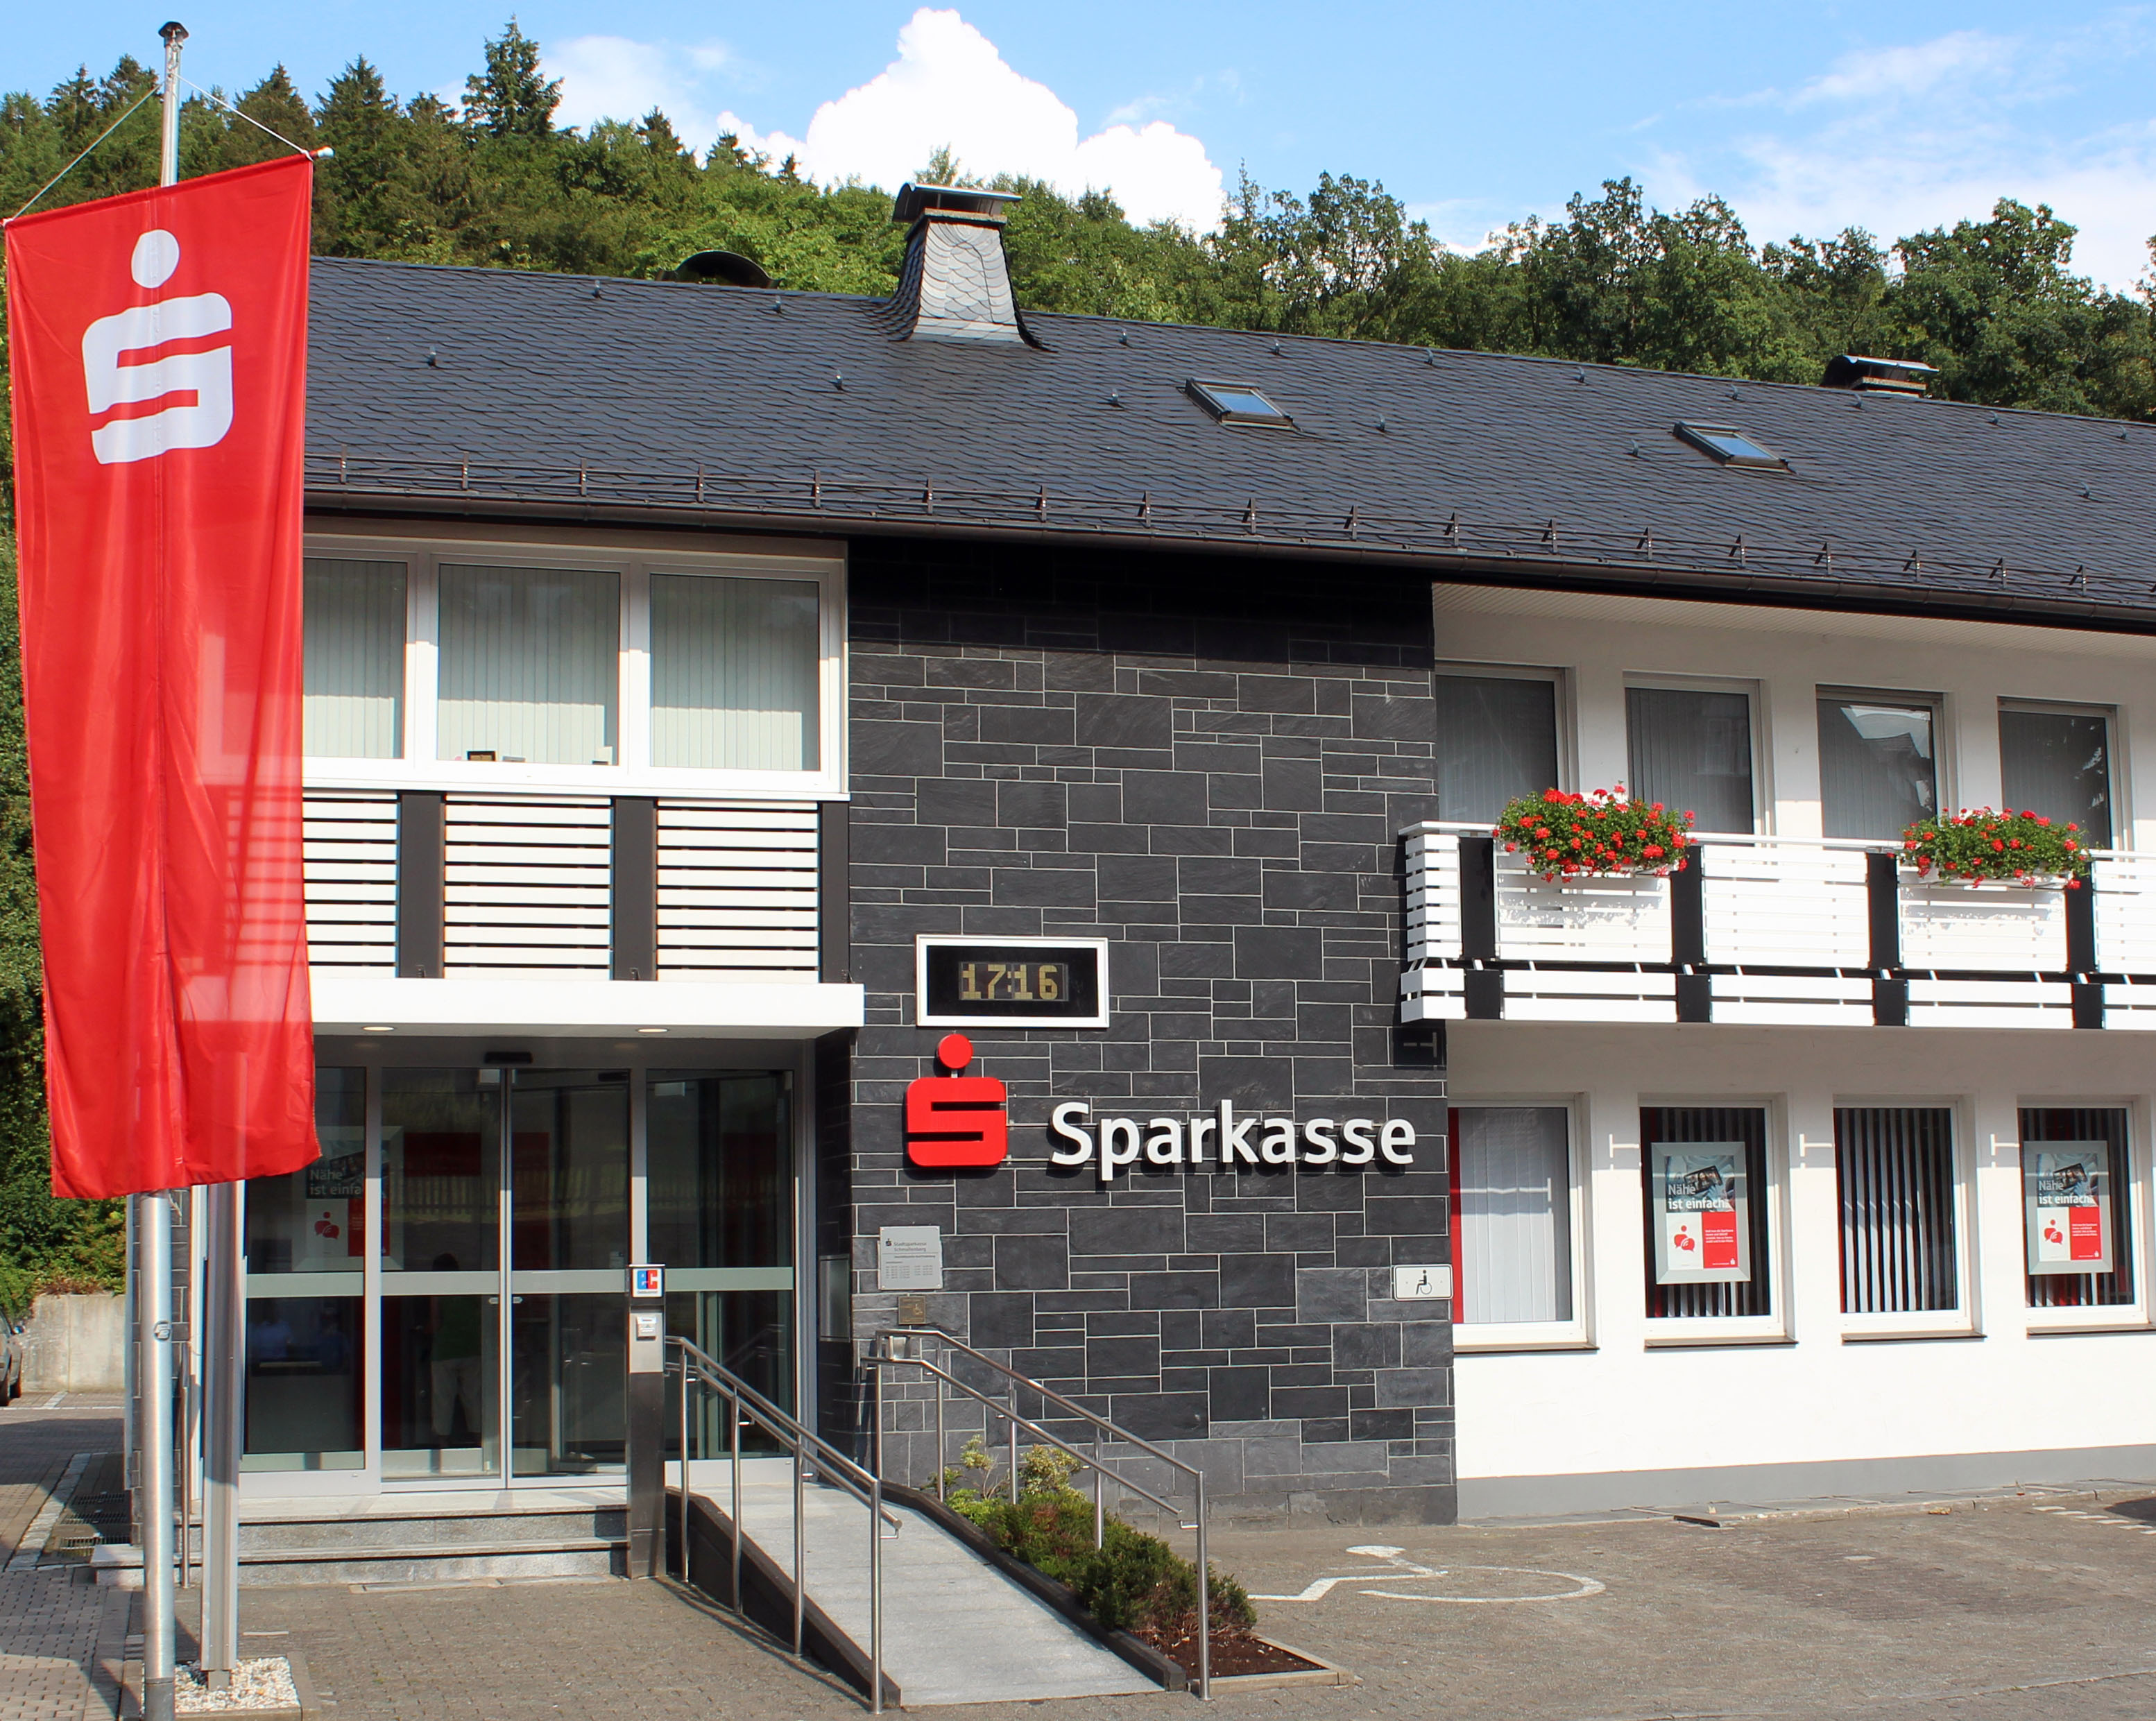 Sparkasse BeratungsCenter Bad Fredeburg